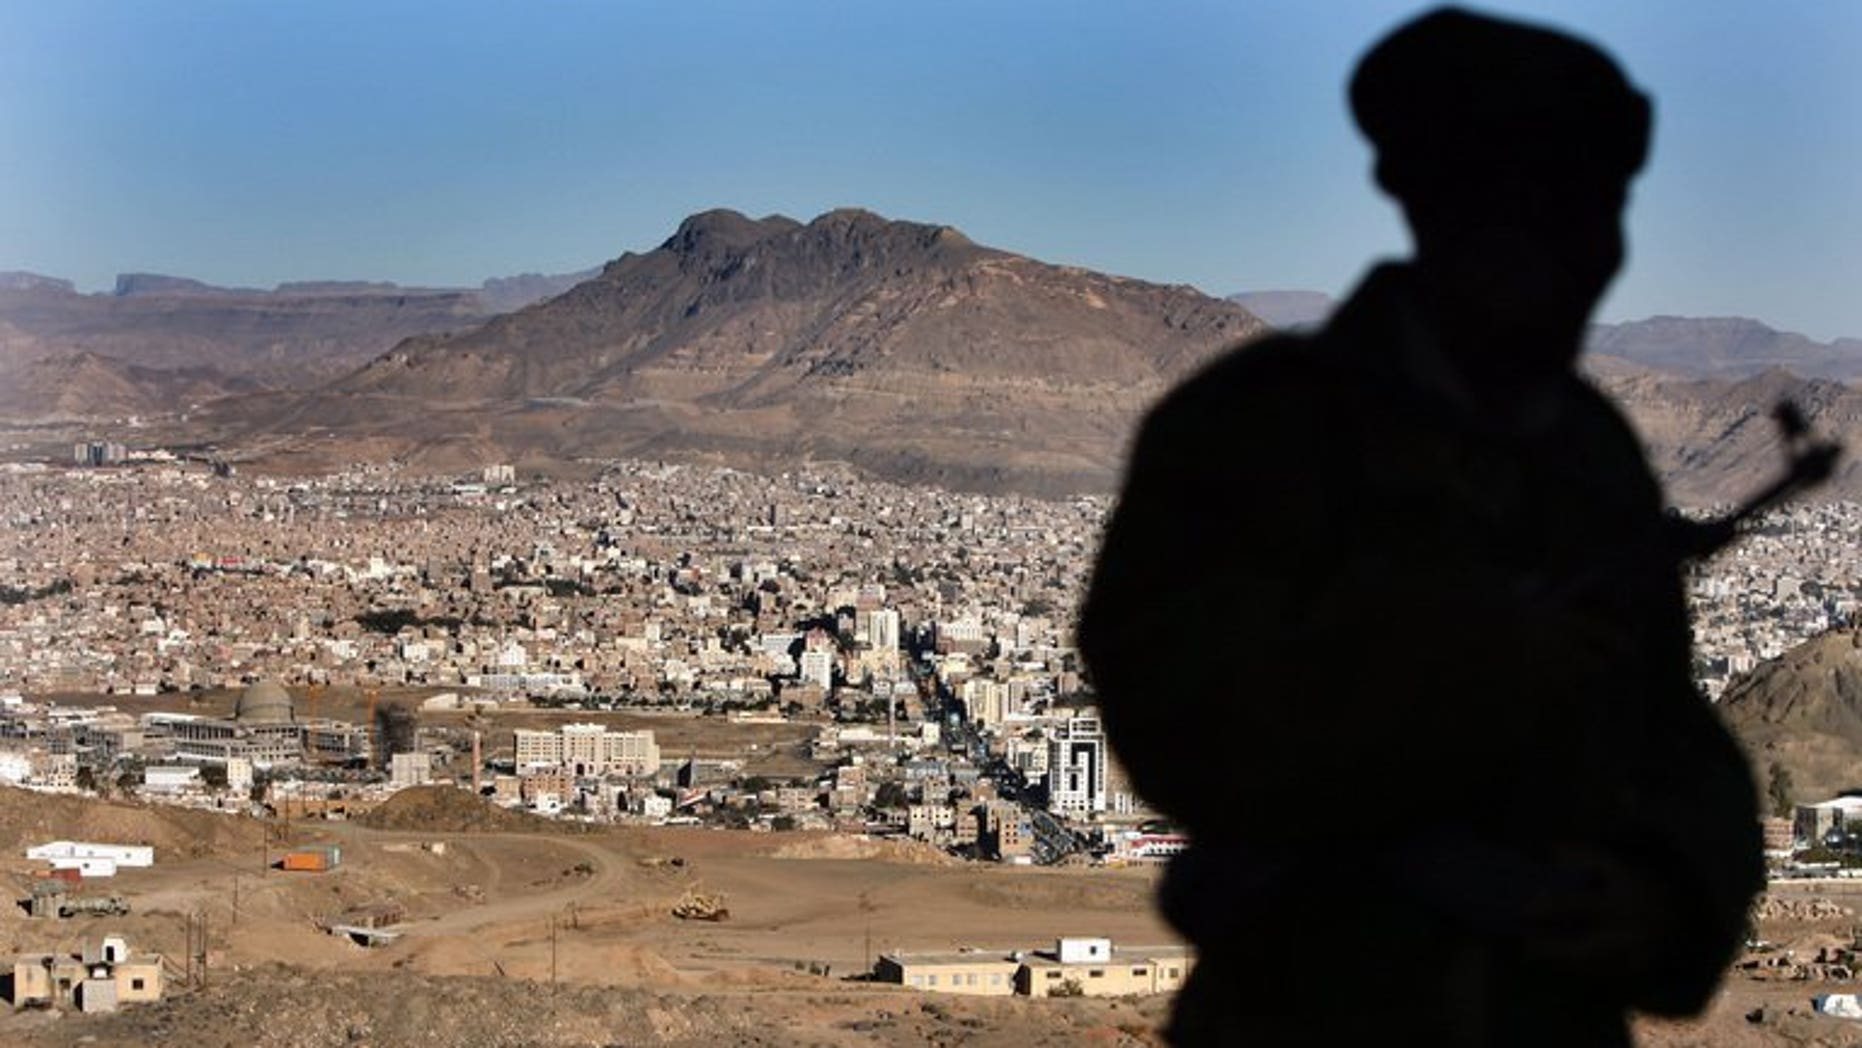 A Yemeni soldier stands on a hill overlooking Sanna, on January 13, 2010. Unknown gunmen have kidnapped an Iranian embassy employee in the Yemeni capital Sanaa, police said, an abduction confirmed by the foreign ministry in Tehran.